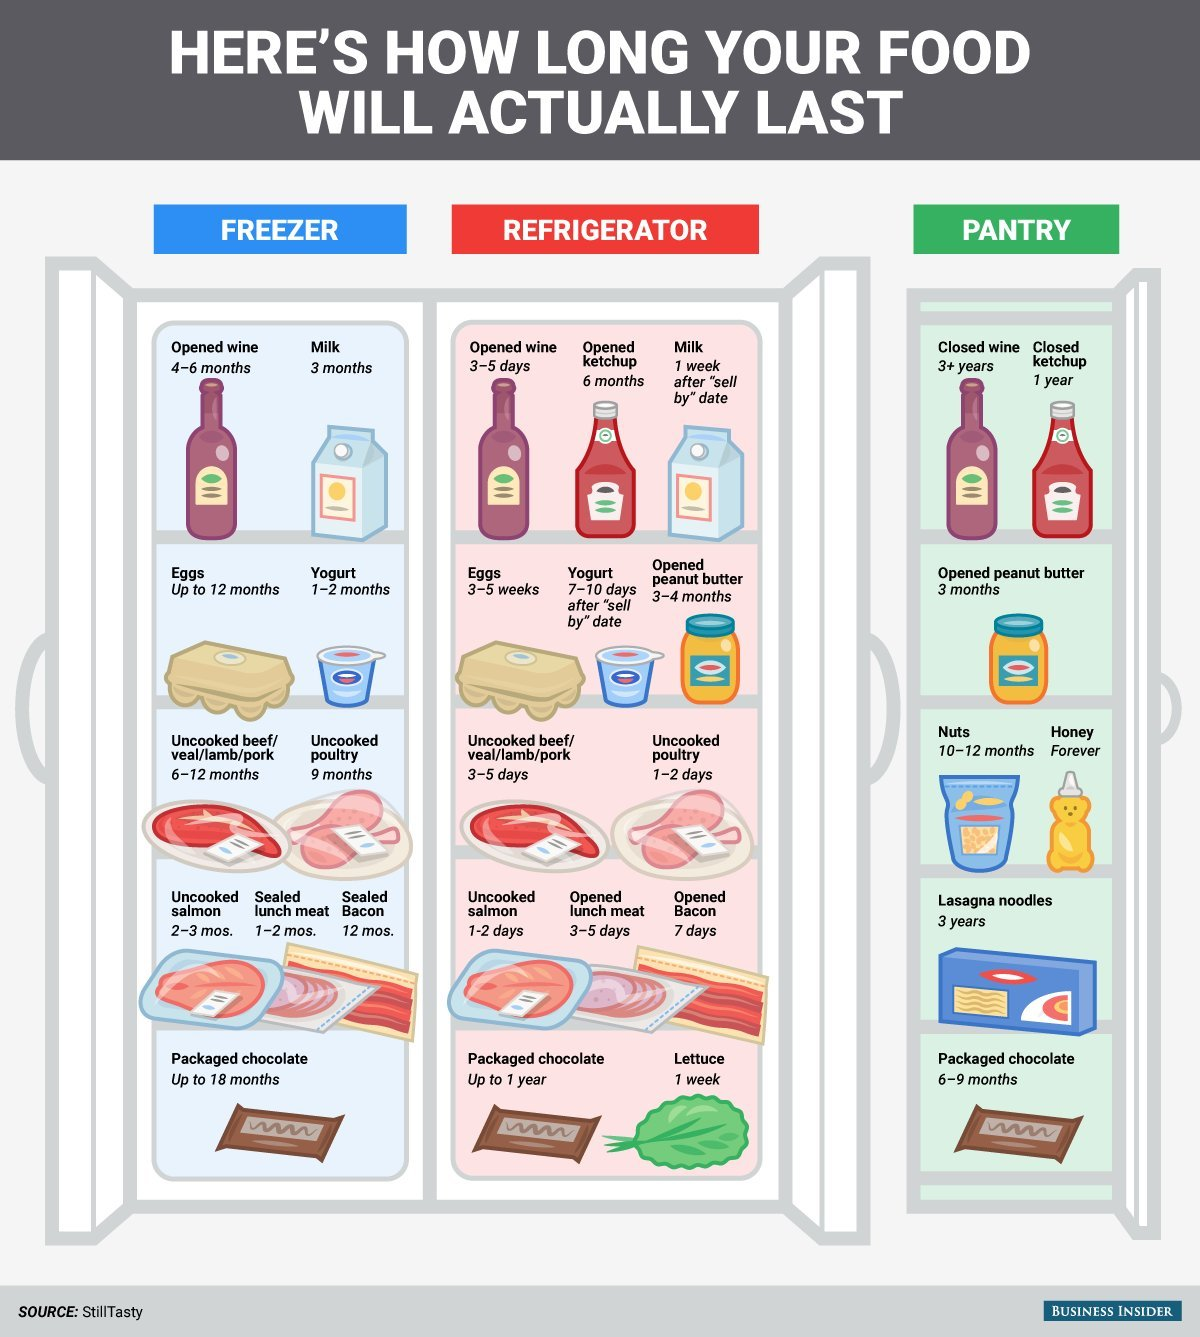 Expiry Dates Mean Almost Nothing. Here's a Graphic and Video to Explain How